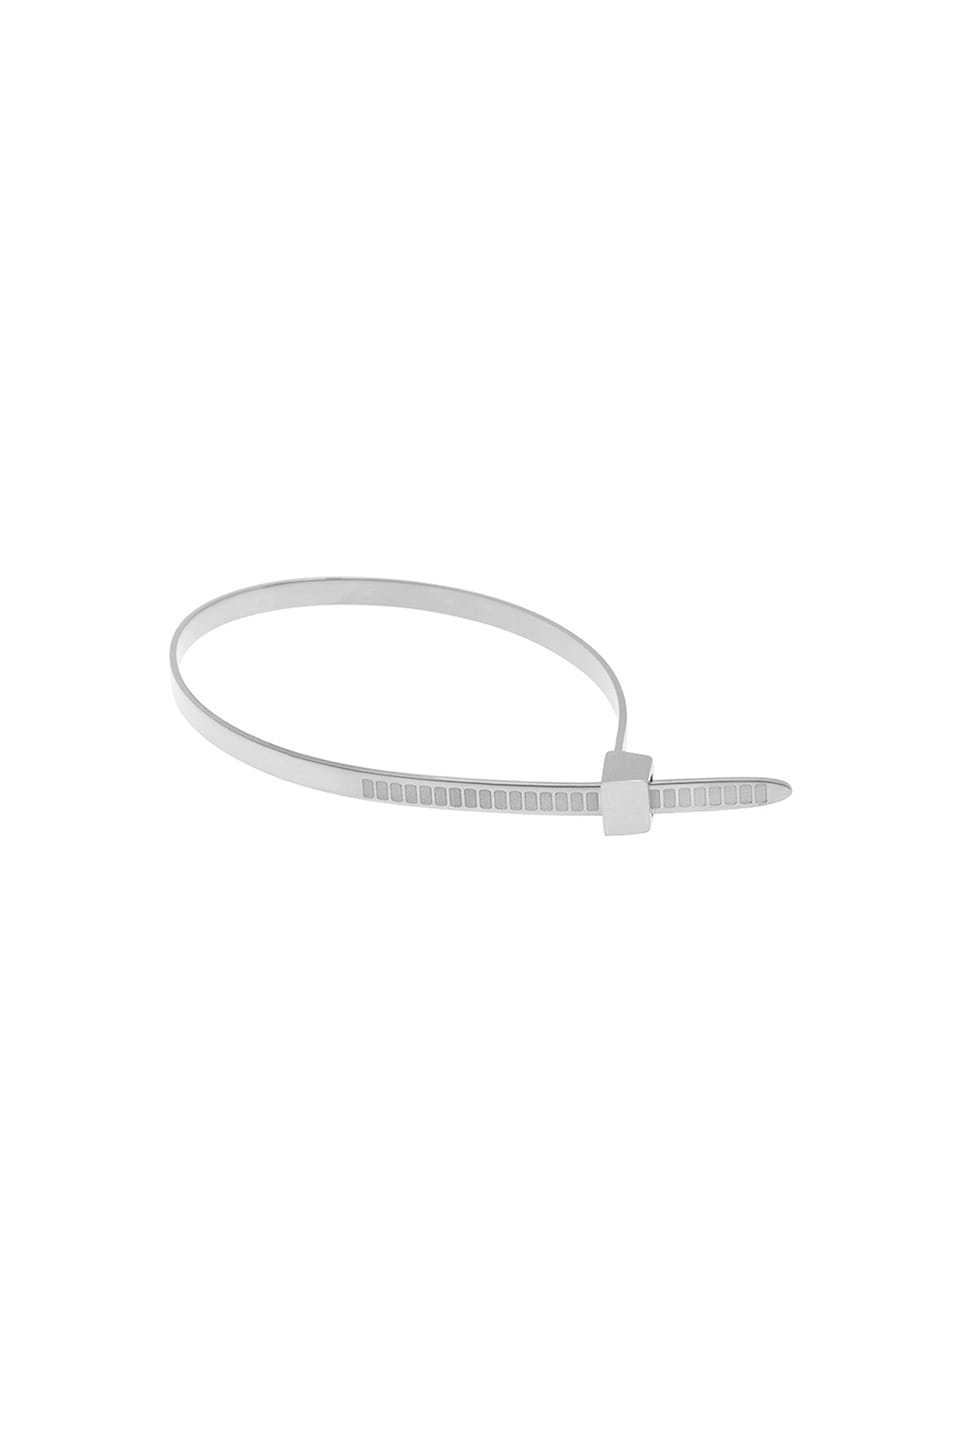 Cast of Vices Zip Tie Bracelet in Silver